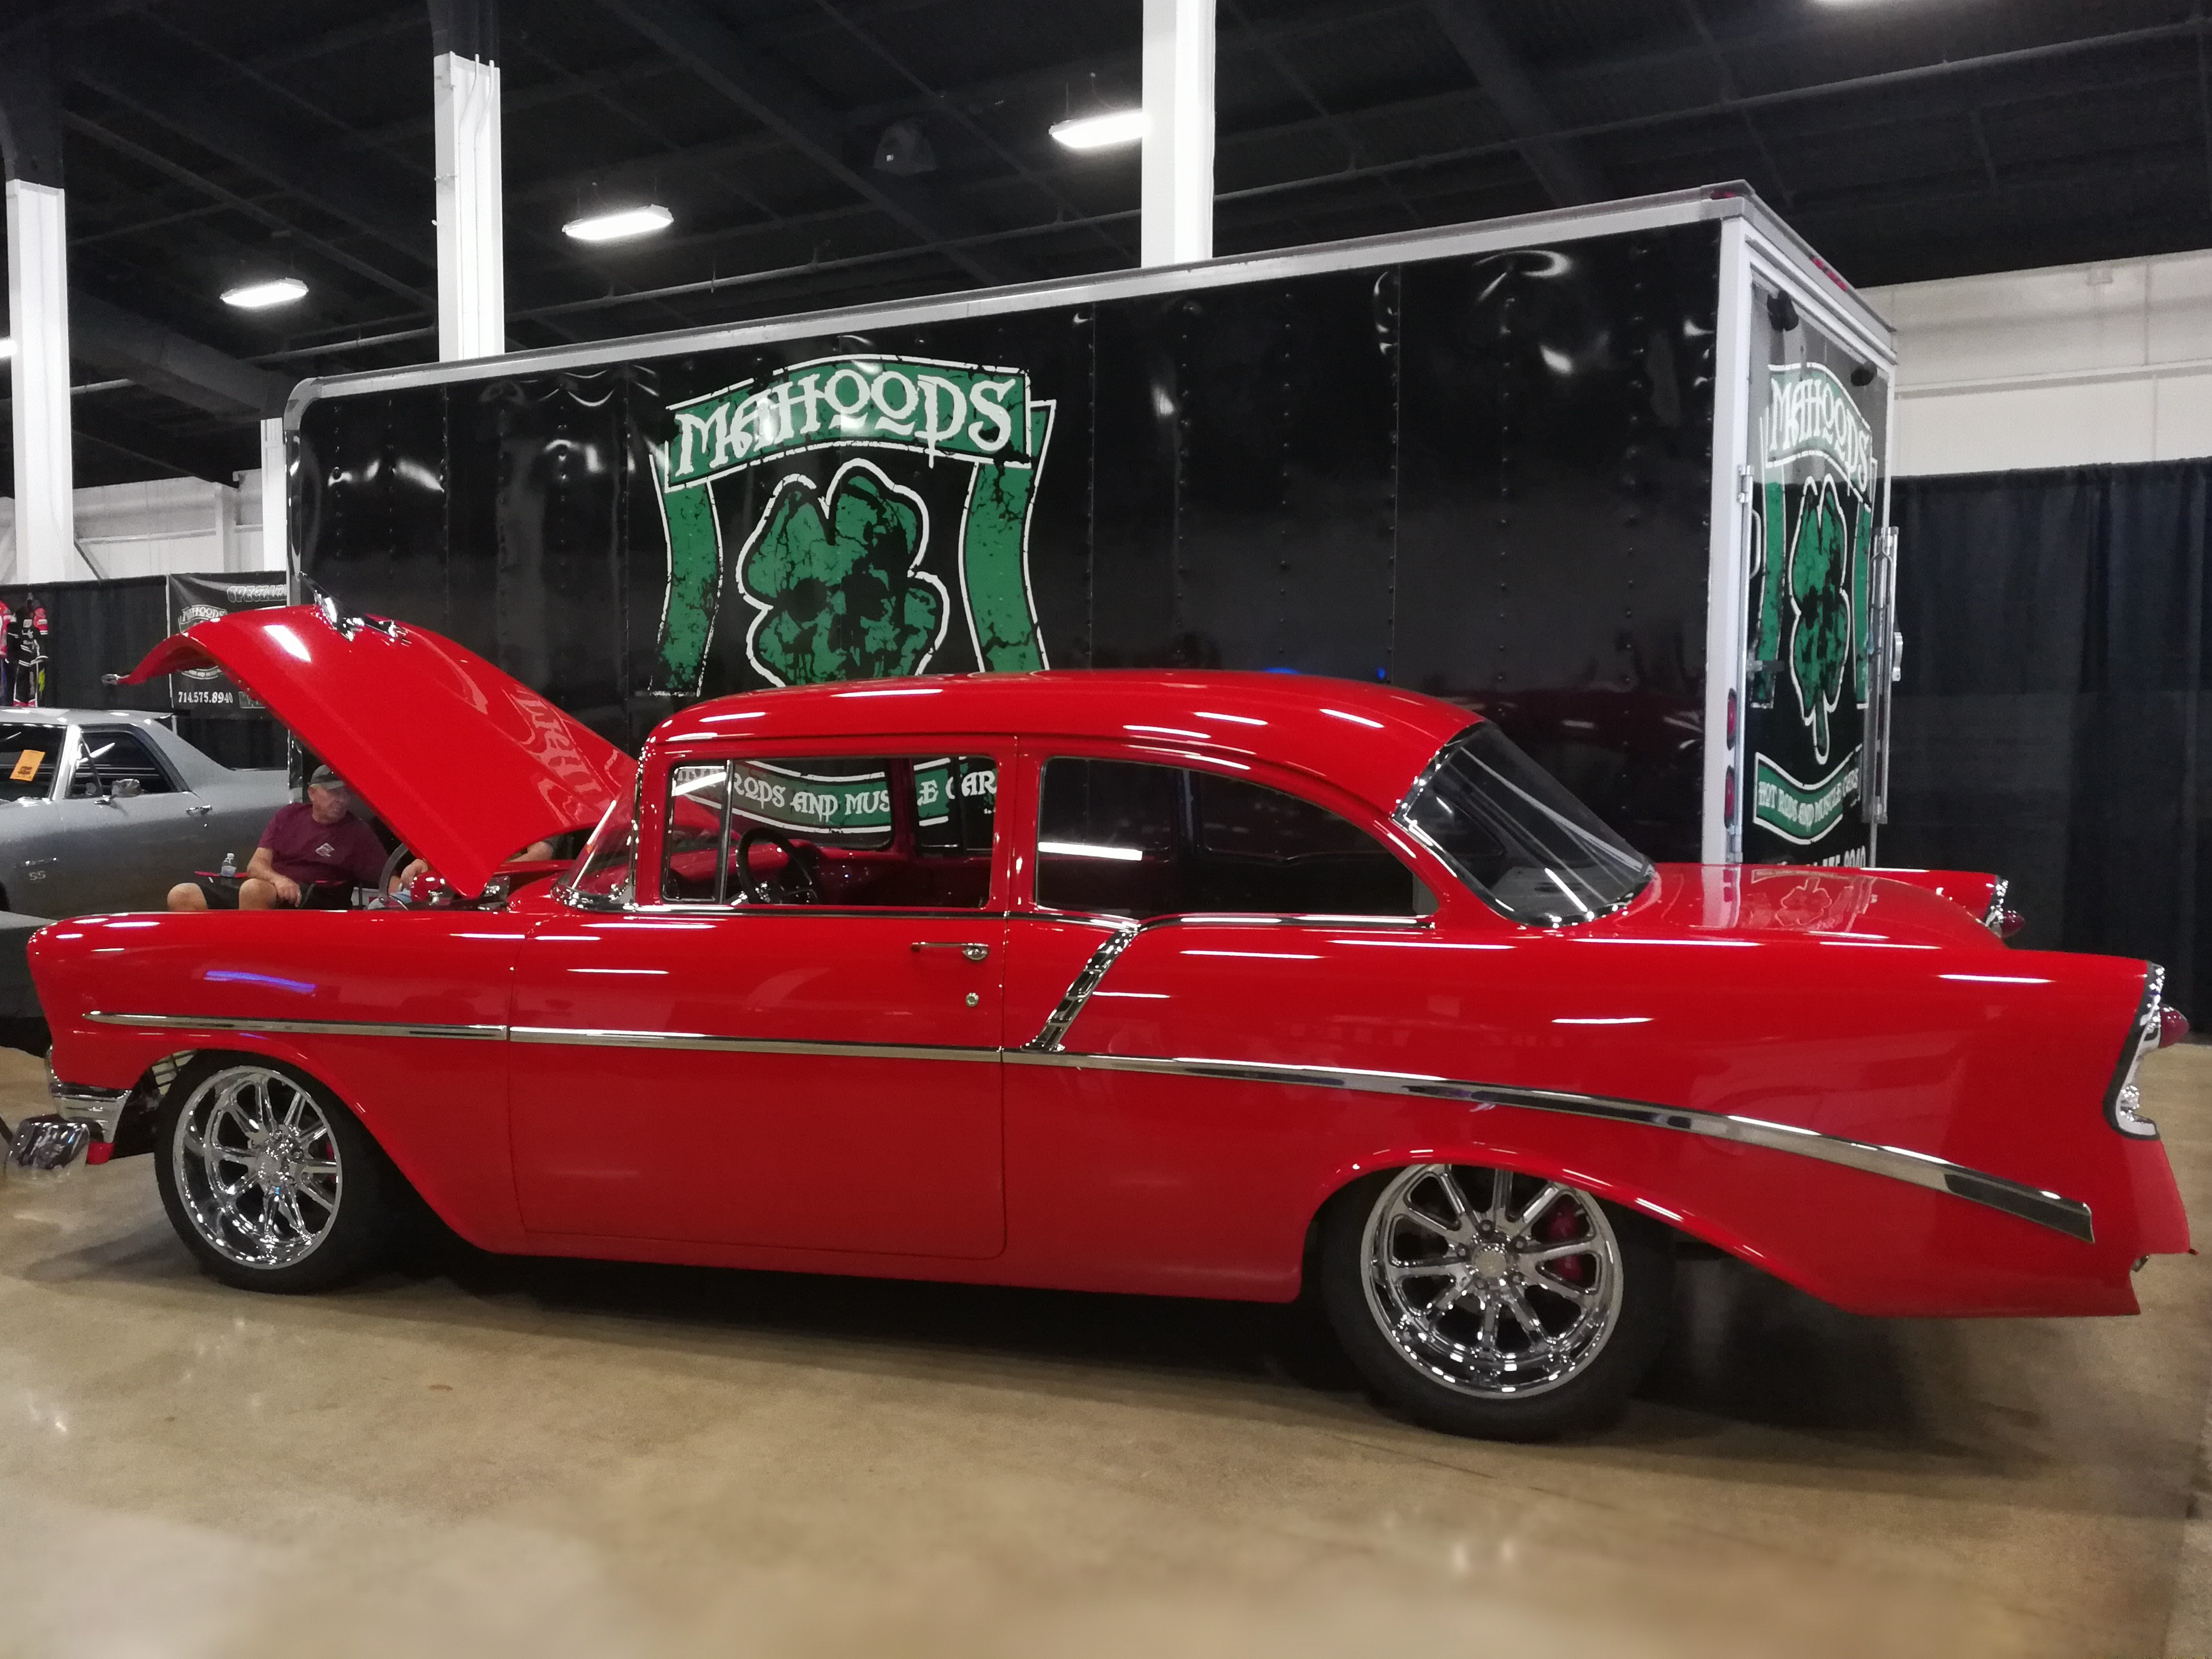 Mahoods Collision And Hot Rods Coupons Near Me In Anaheim